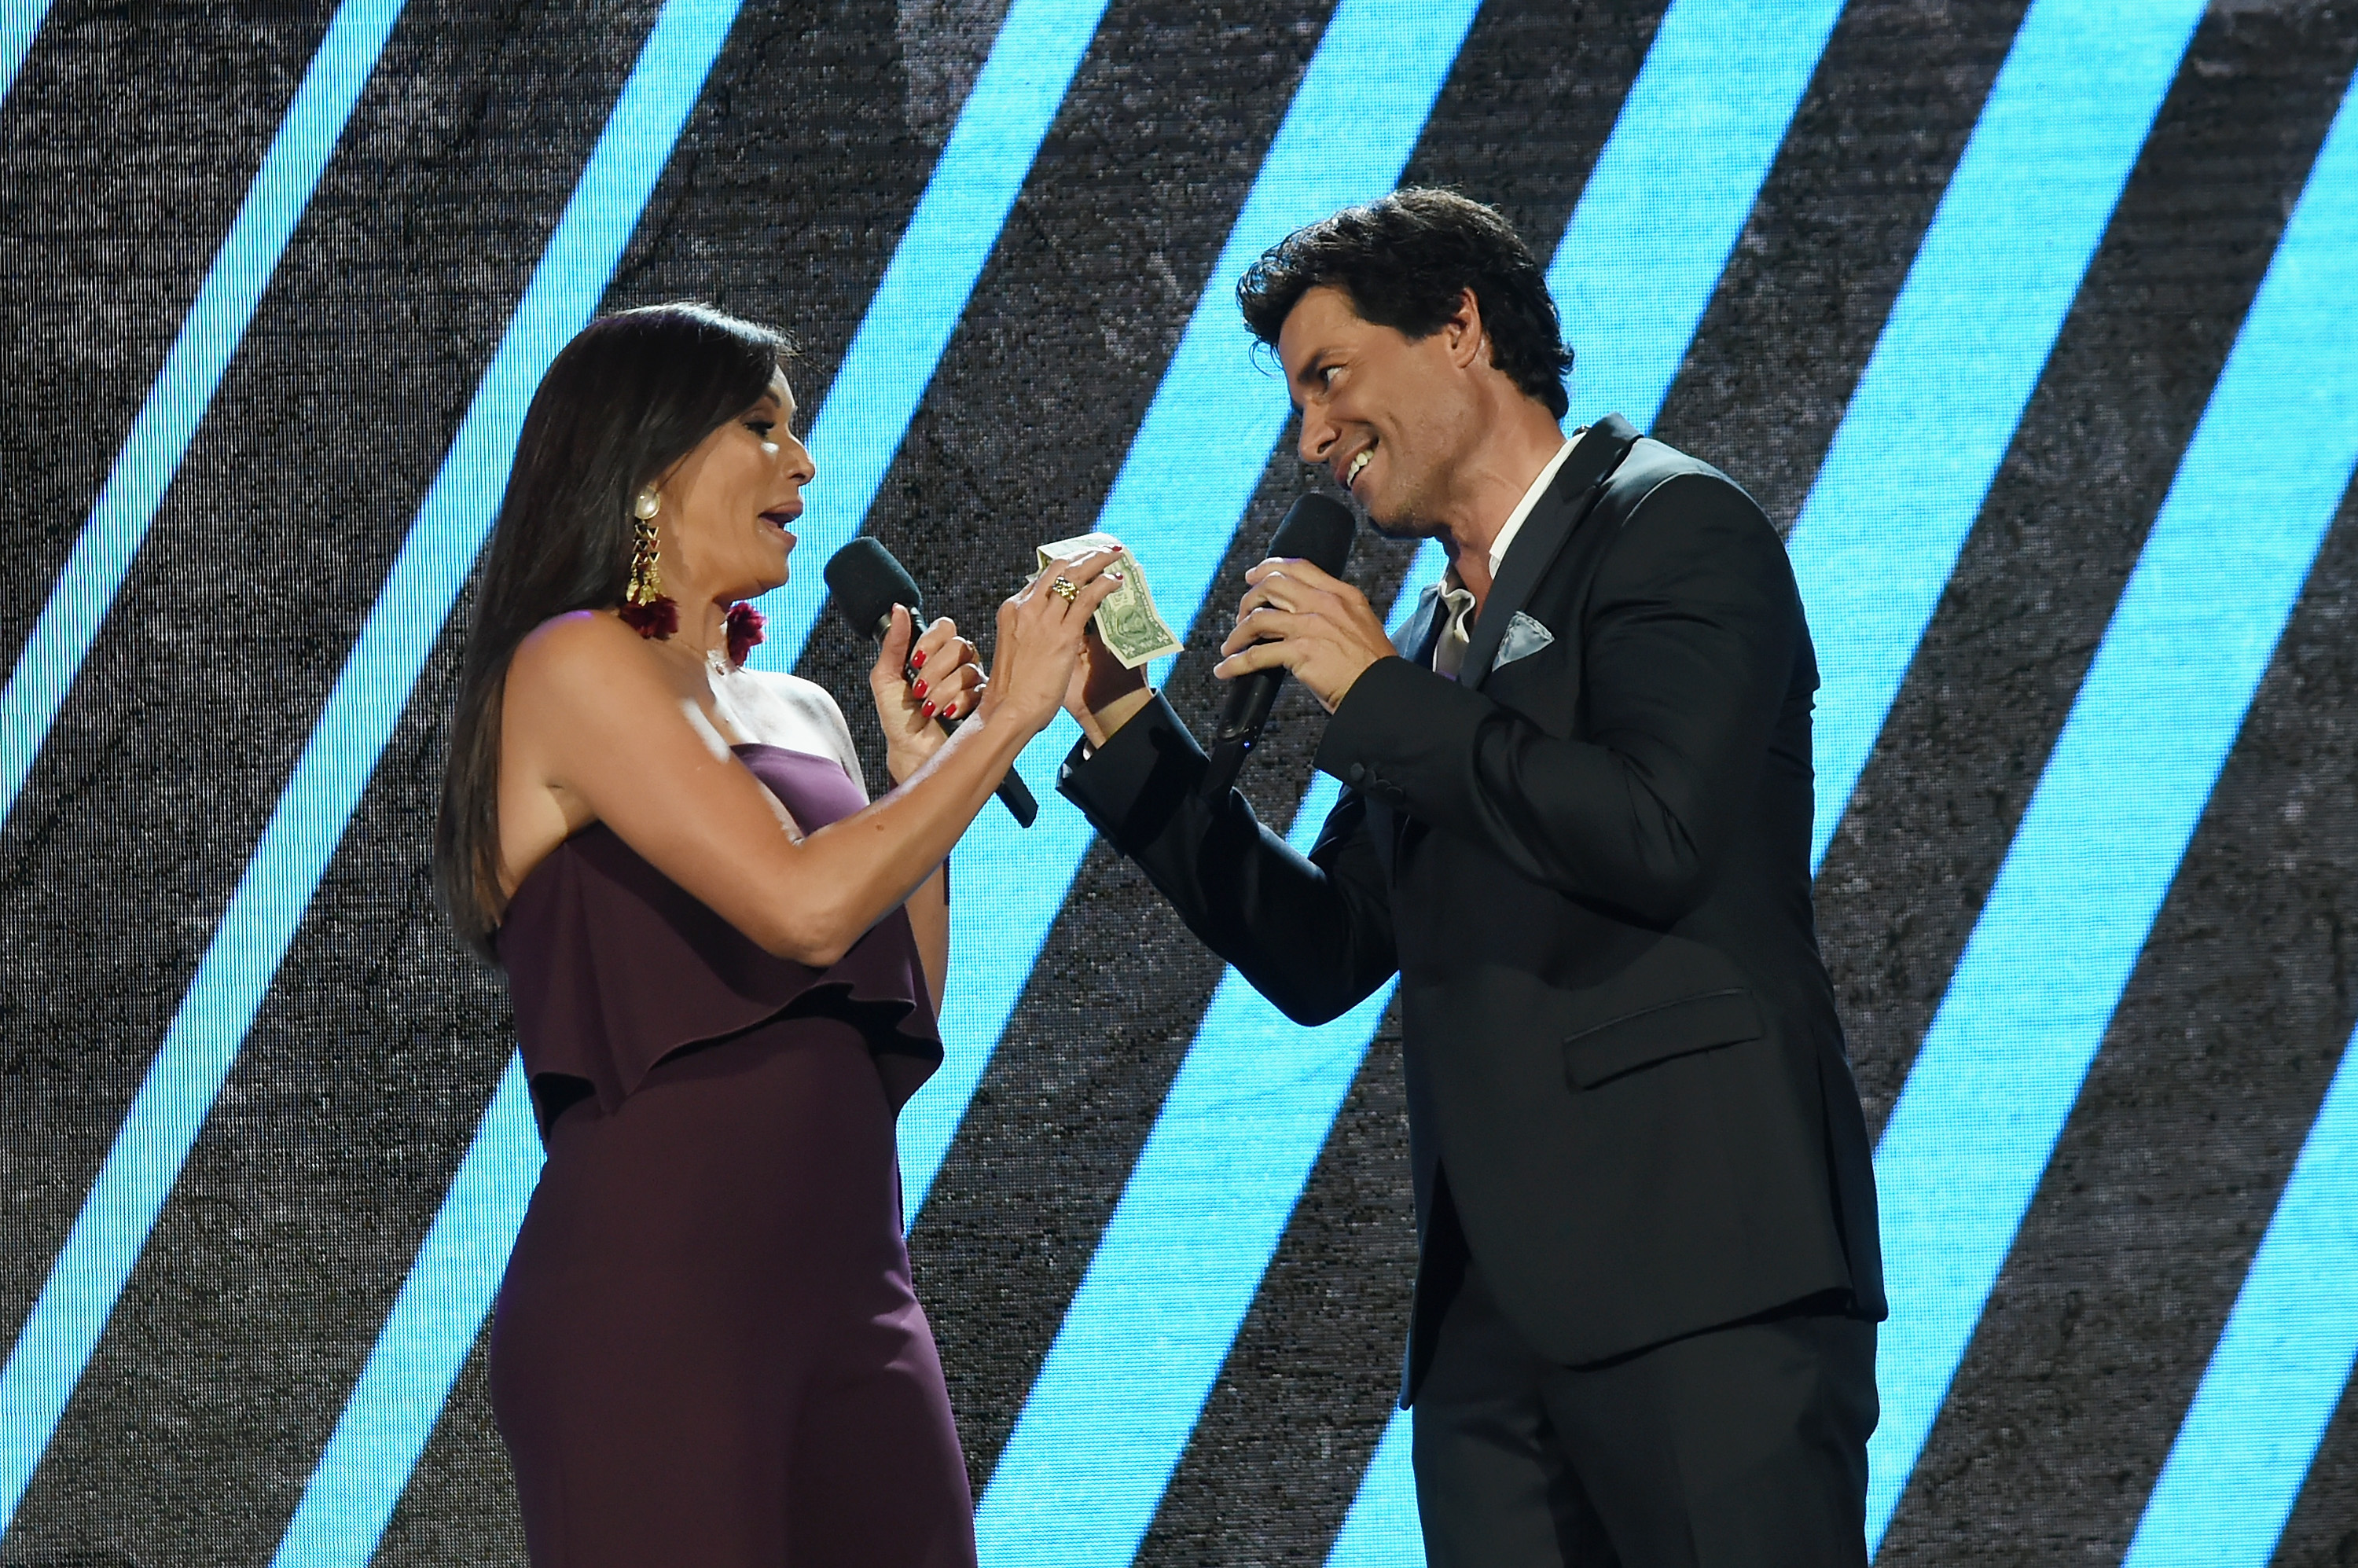 Giselle Blondet, Chayanne